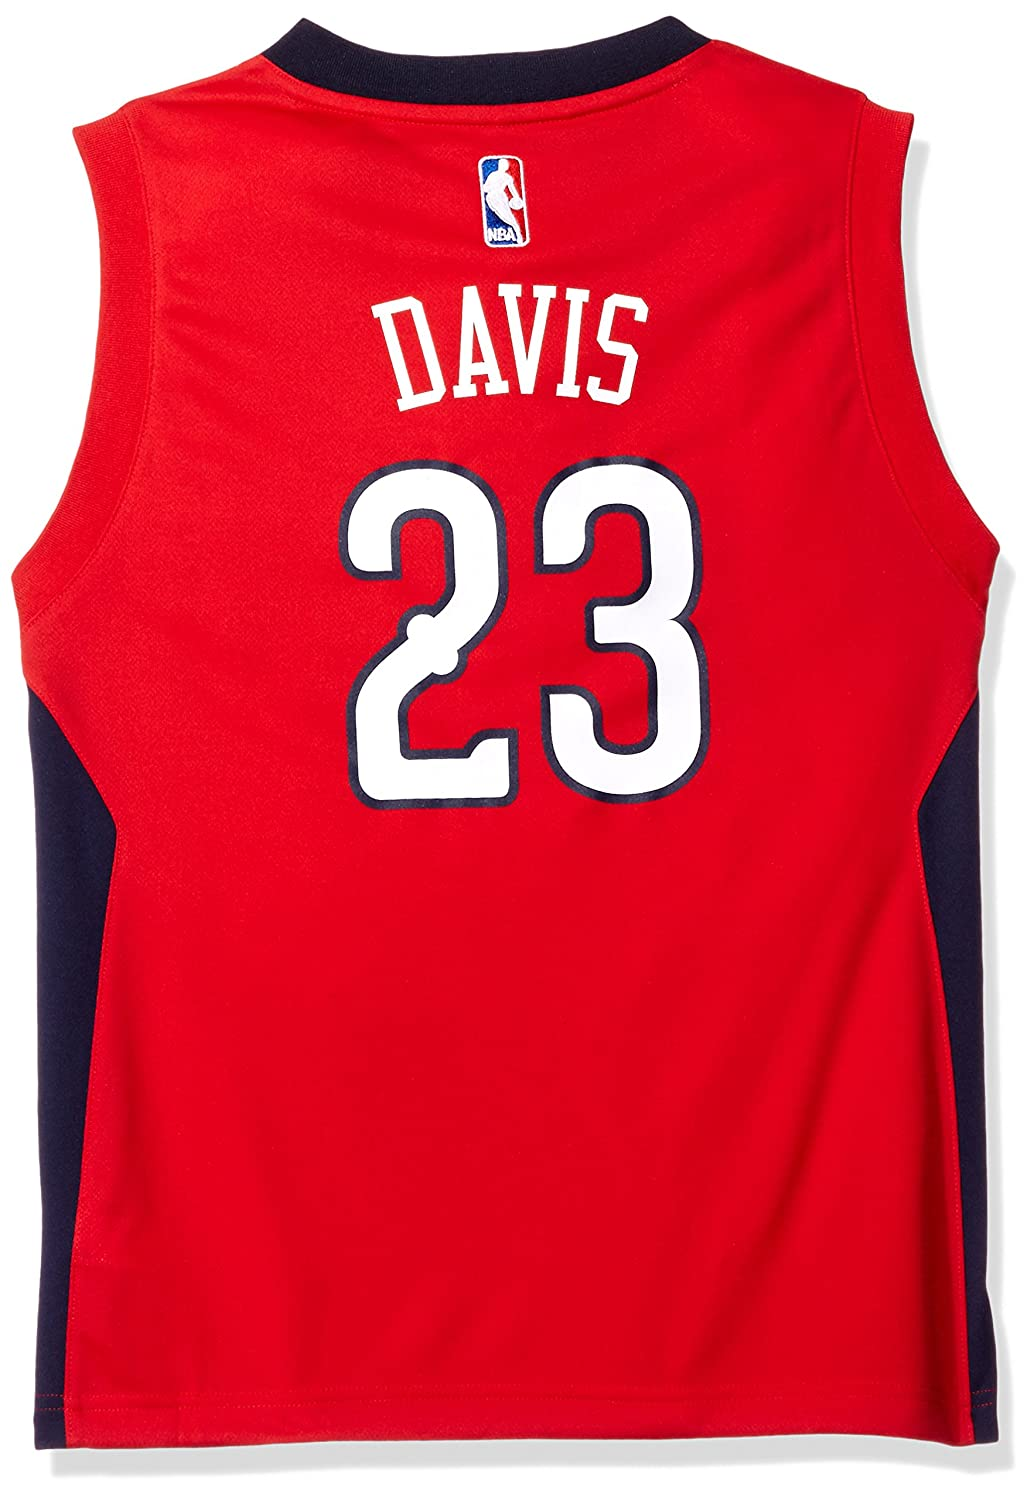 50540b82958a Amazon.com   NBA Youth 8-20 New Orleans Pelicans Davis Replica Alternate  jersey   Sports   Outdoors